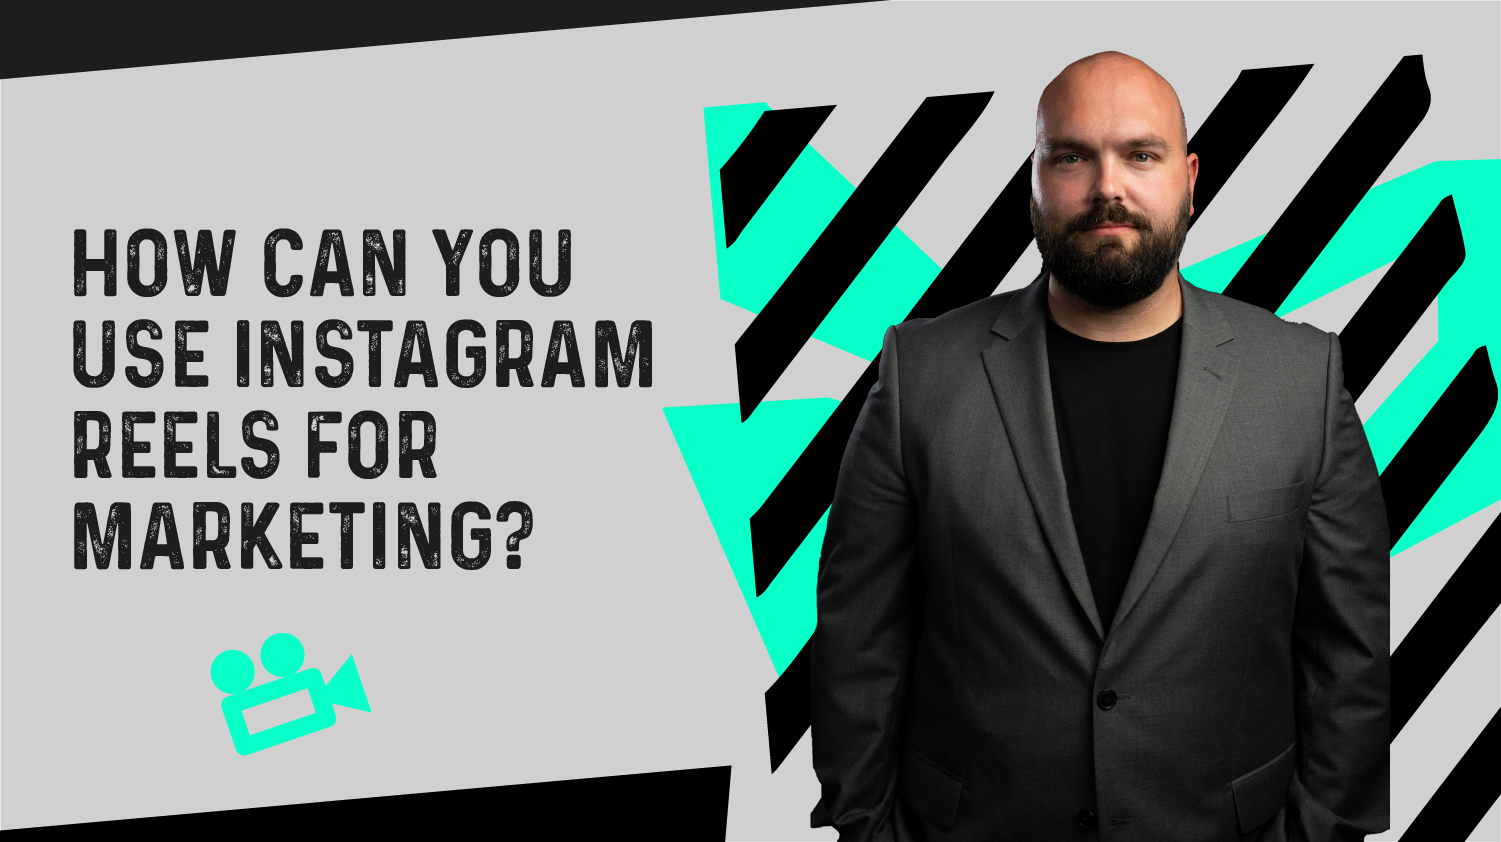 How Can You Use Instagram Reels for Marketing?